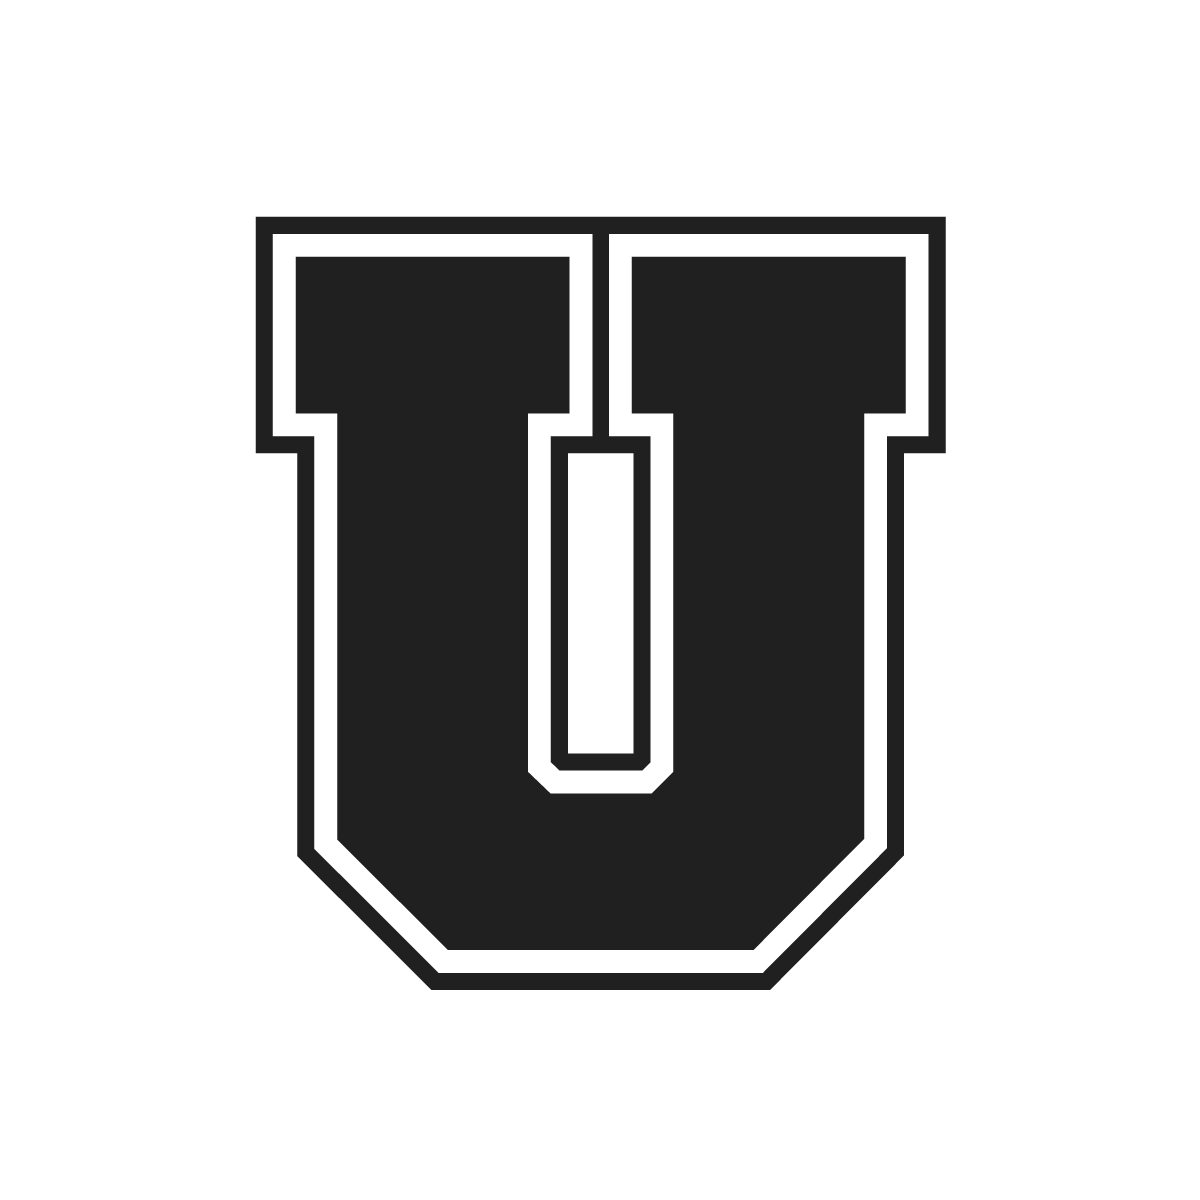 ONTAL_ICON_UNIVERSTITY_NORMAL.png